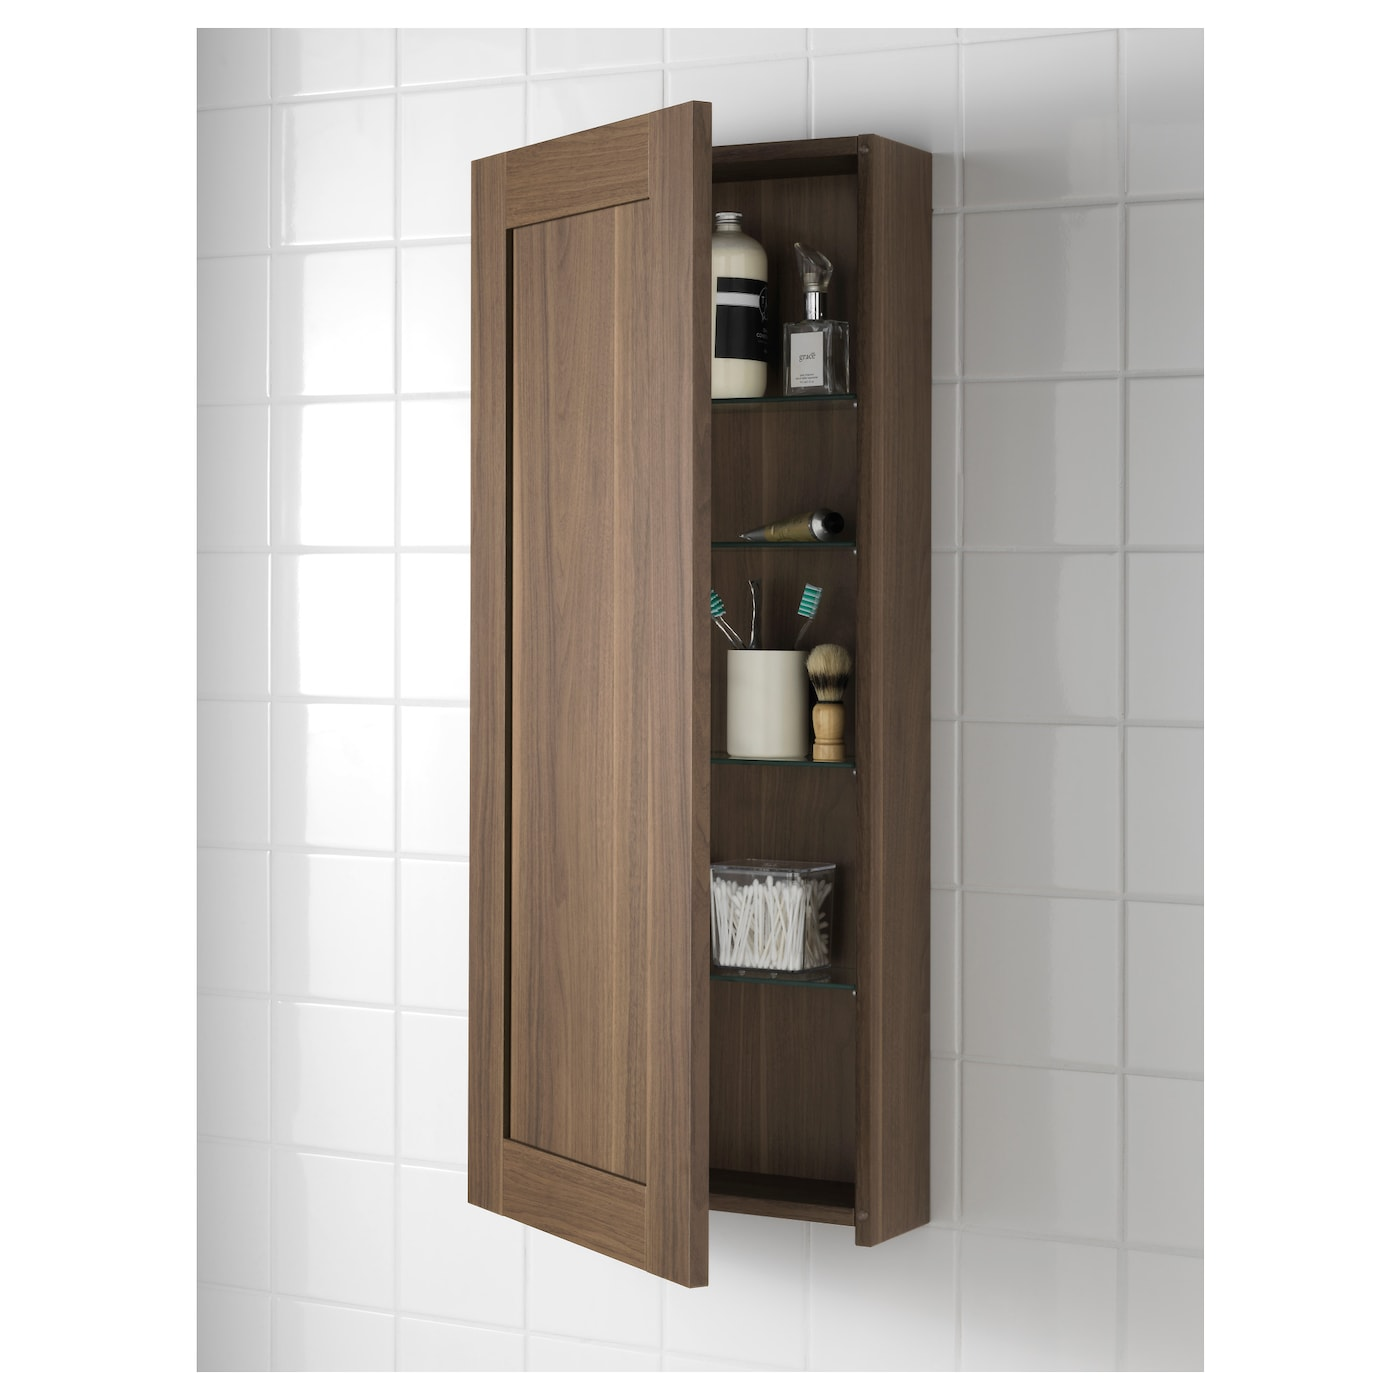 Ikea Kitchen Wall Storage: GODMORGON Wall Cabinet With 1 Door Walnut Effect 40 X 14 X